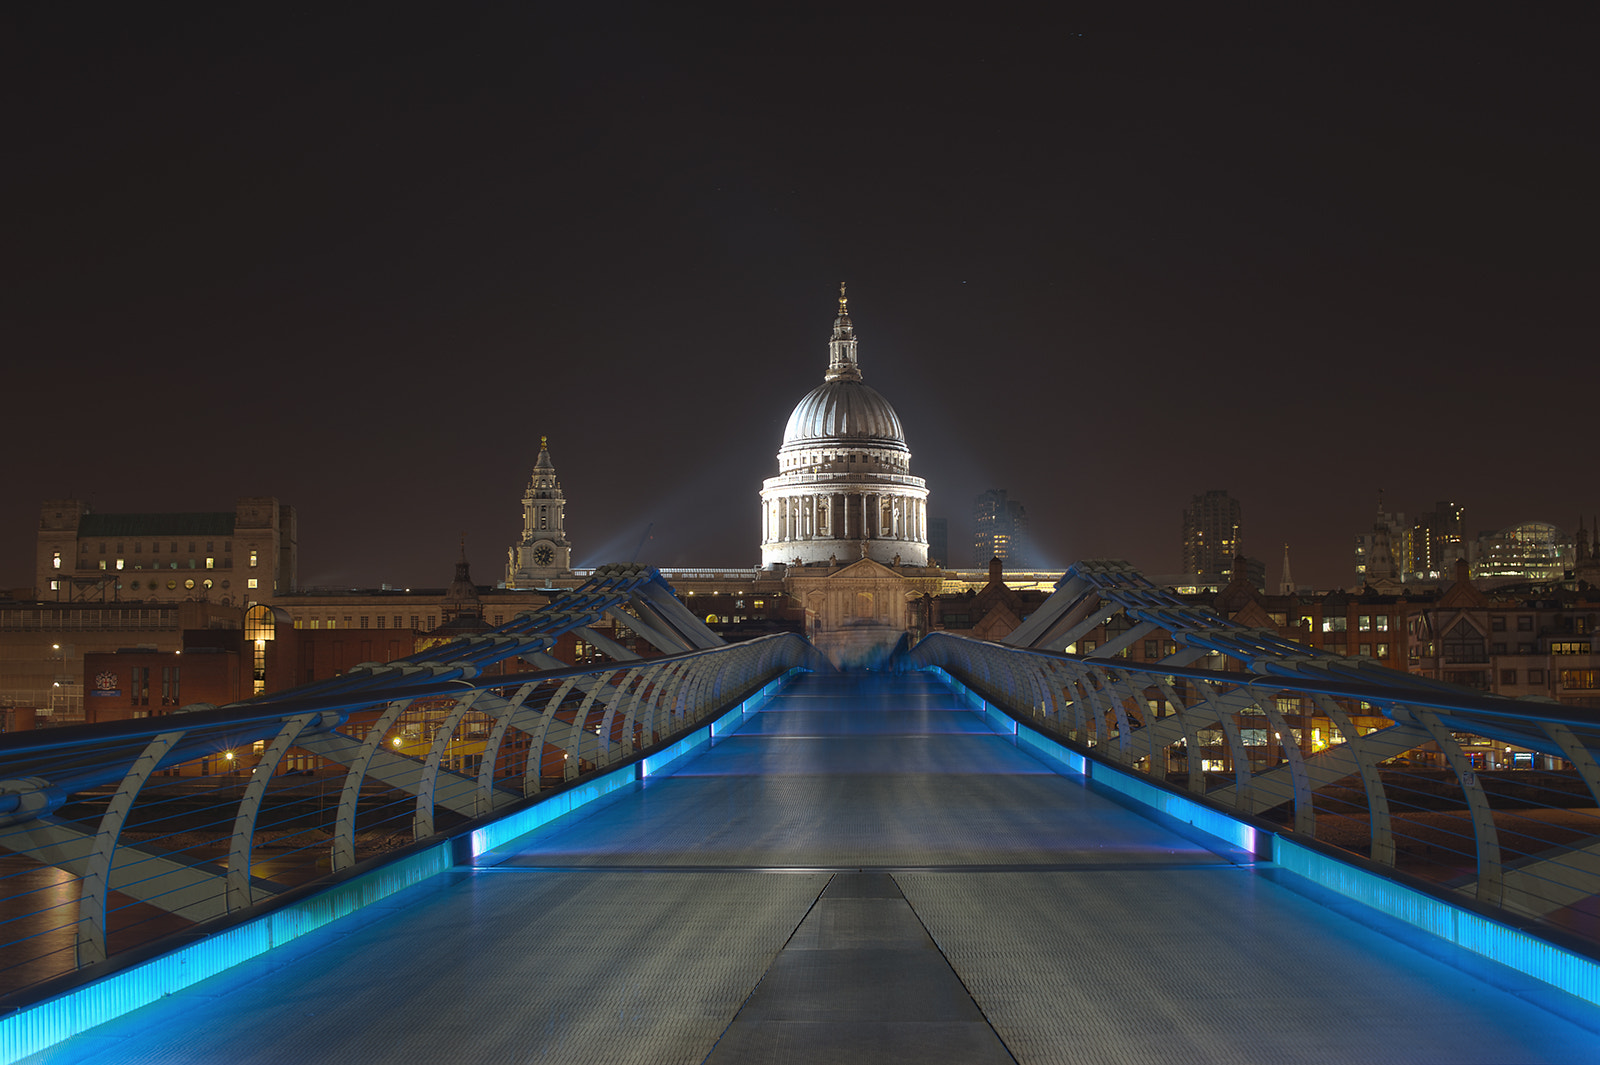 Photograph St Paul's Cathedral  by Stathis Xagoraris on 500px